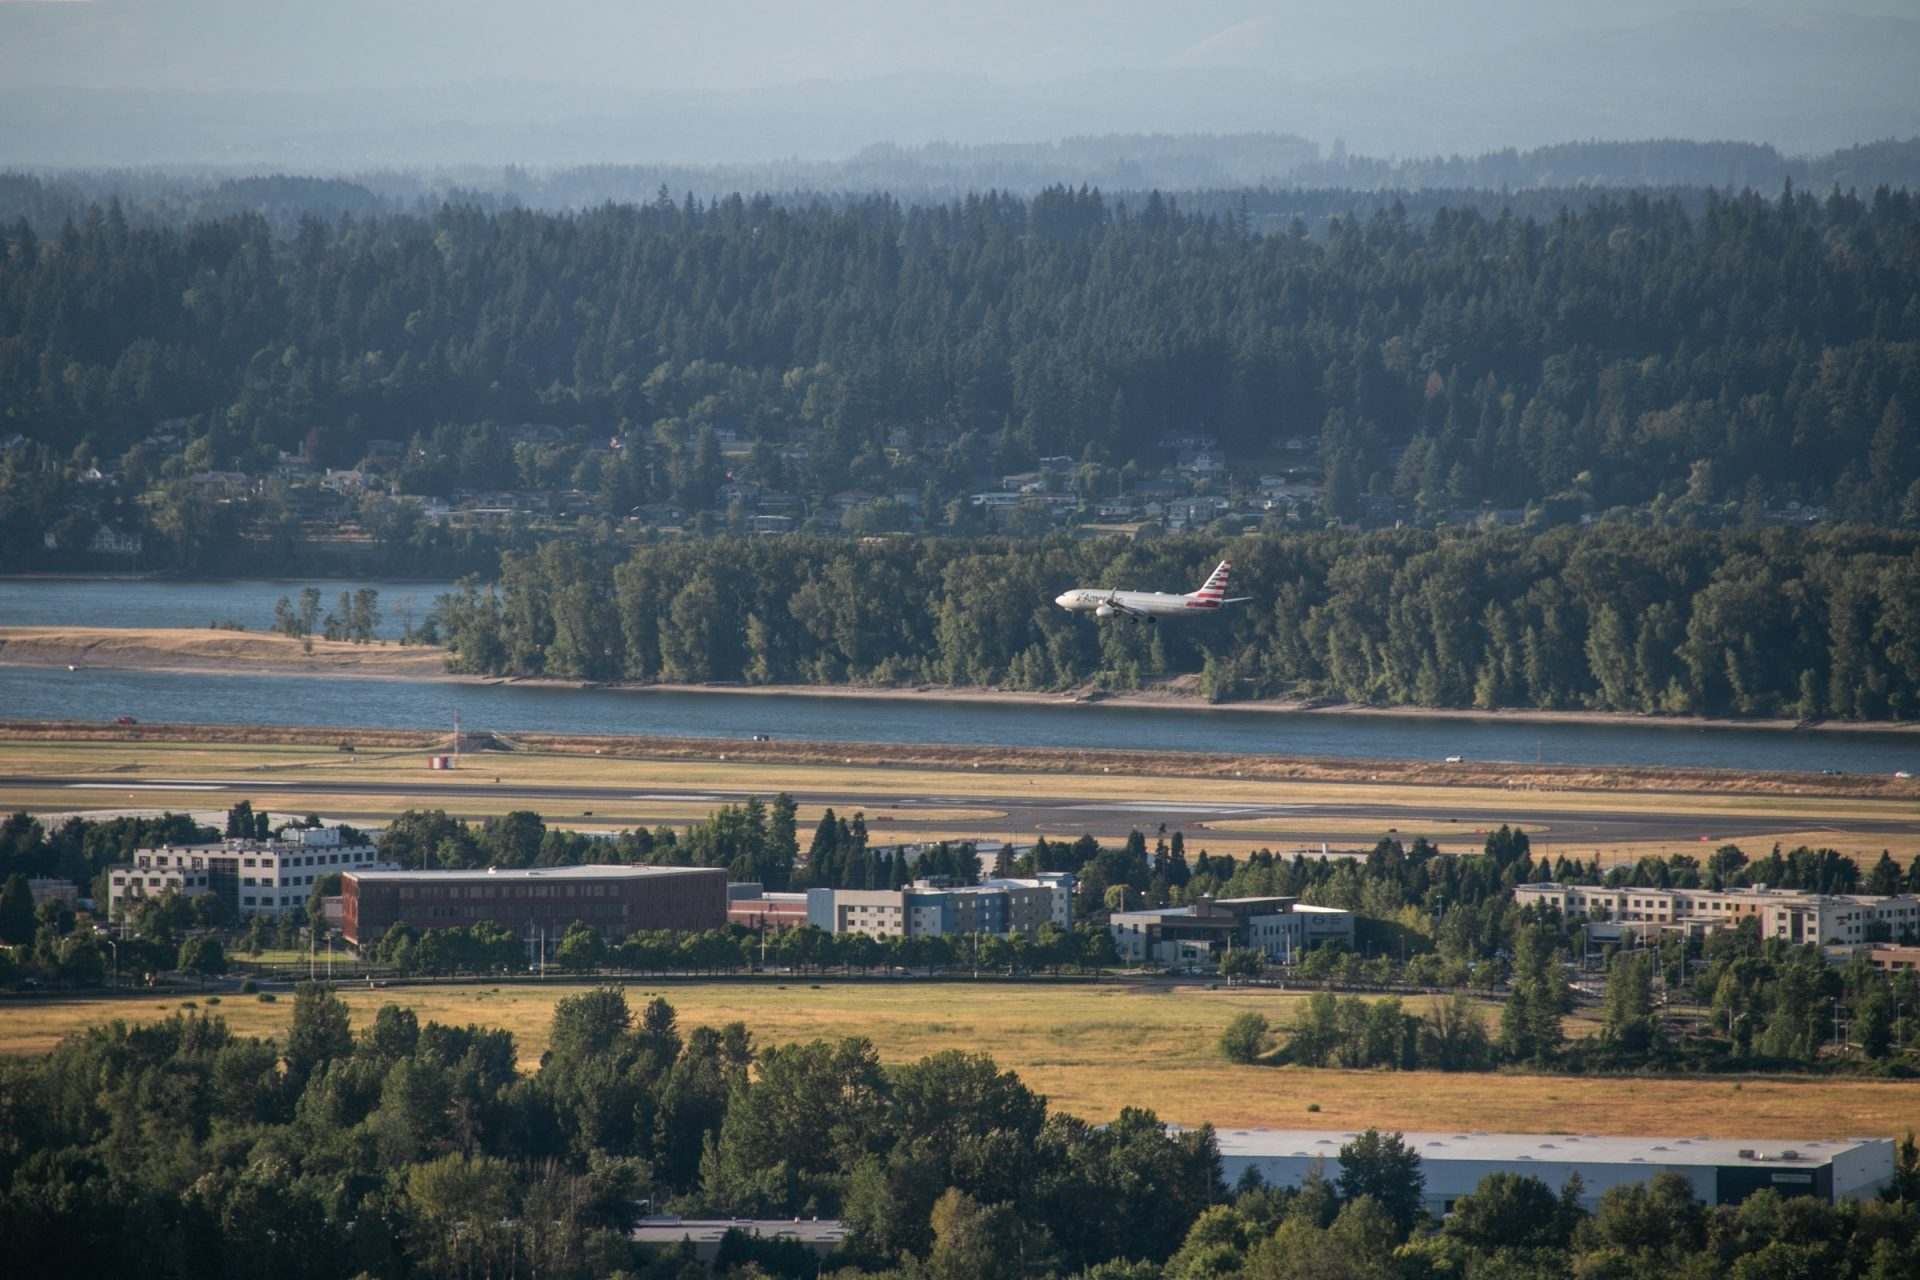 Commercial Plane Preparing To Land Near River And Forest